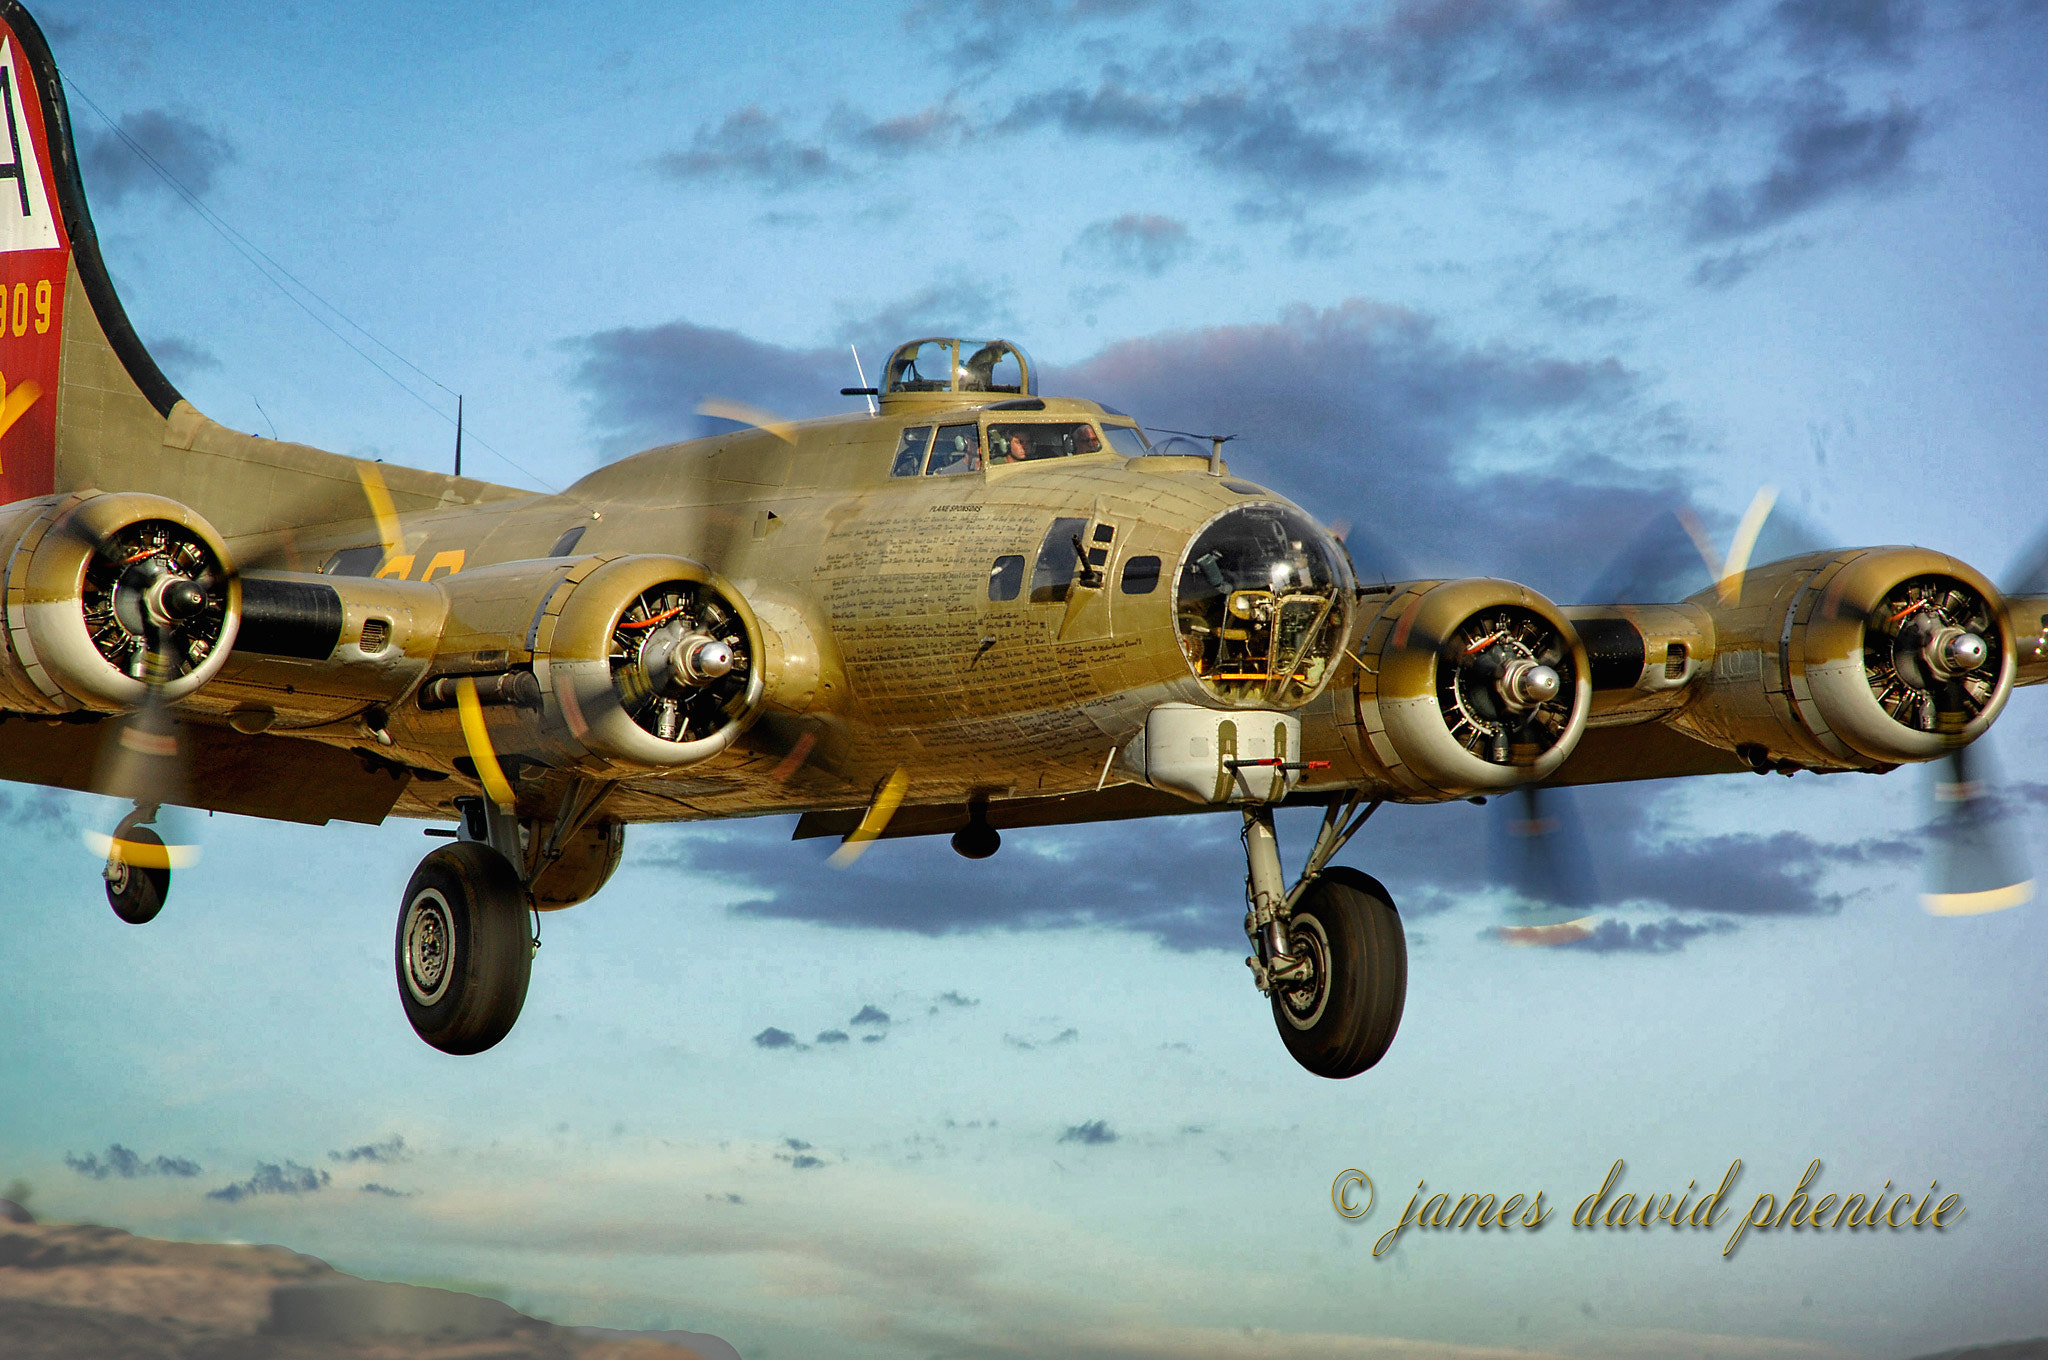 Photograph Aircraft Series:  Flying Fortress by James David Phenicie on 500px